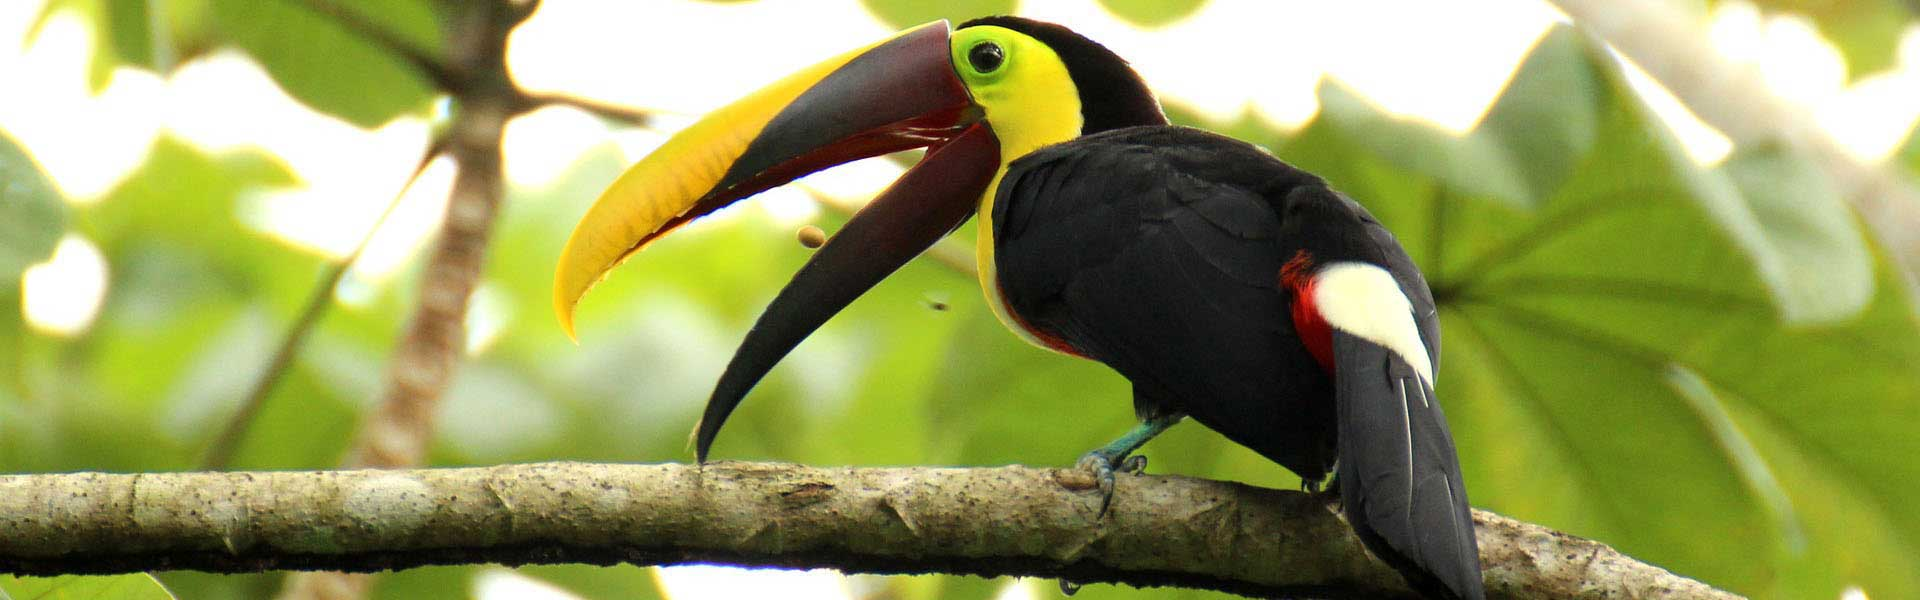 Voyage Costa Rica : Toucan à carène de la jungle du Costa Rica